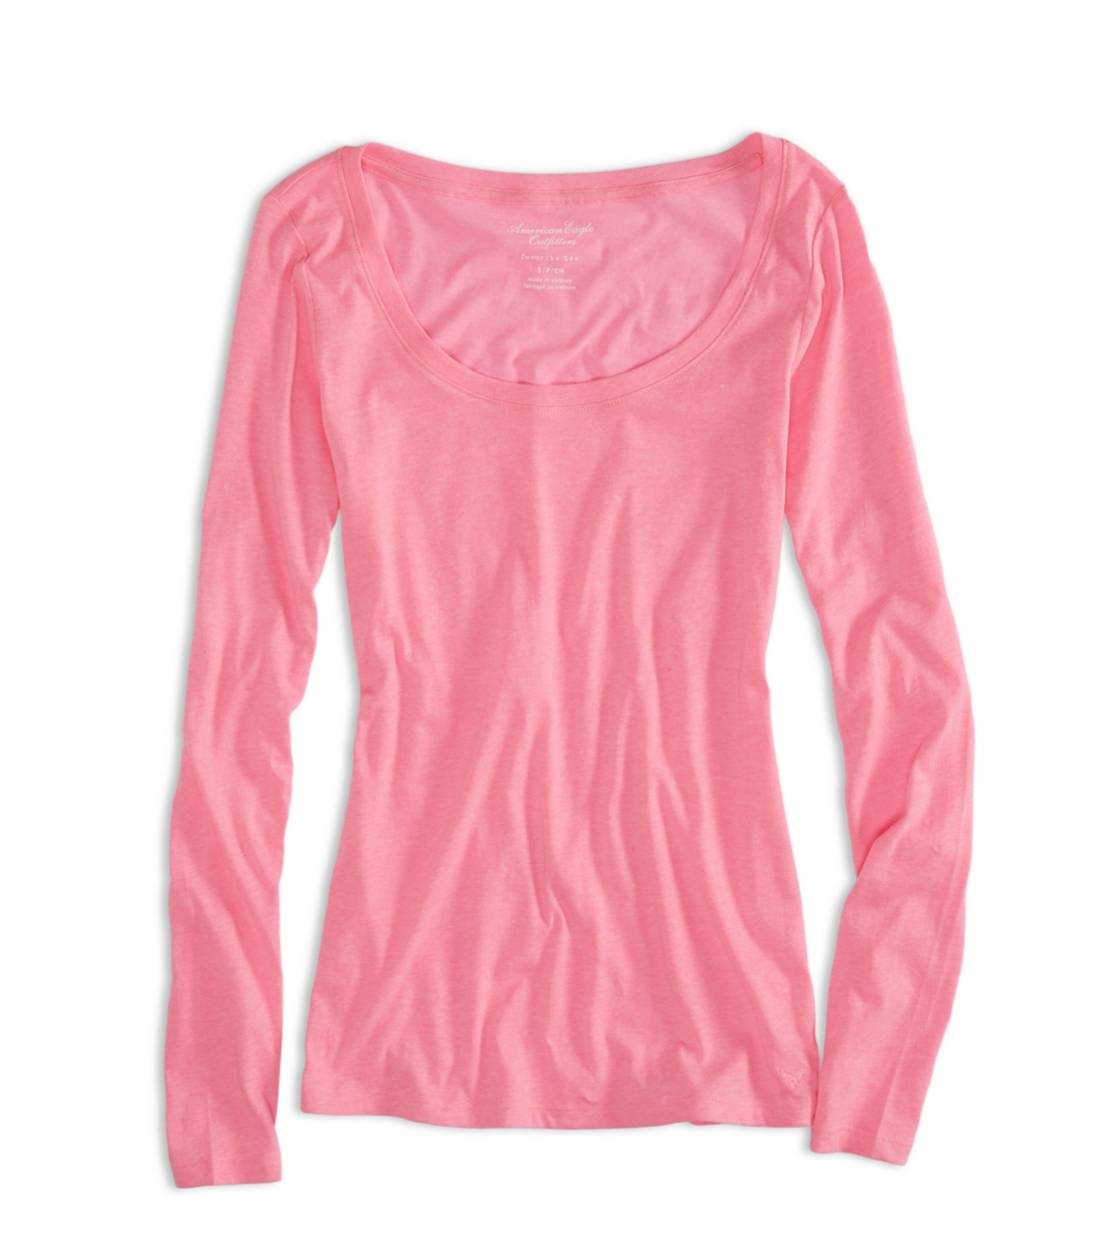 Voltage Pink AEO Factory Favorite T-Shirt